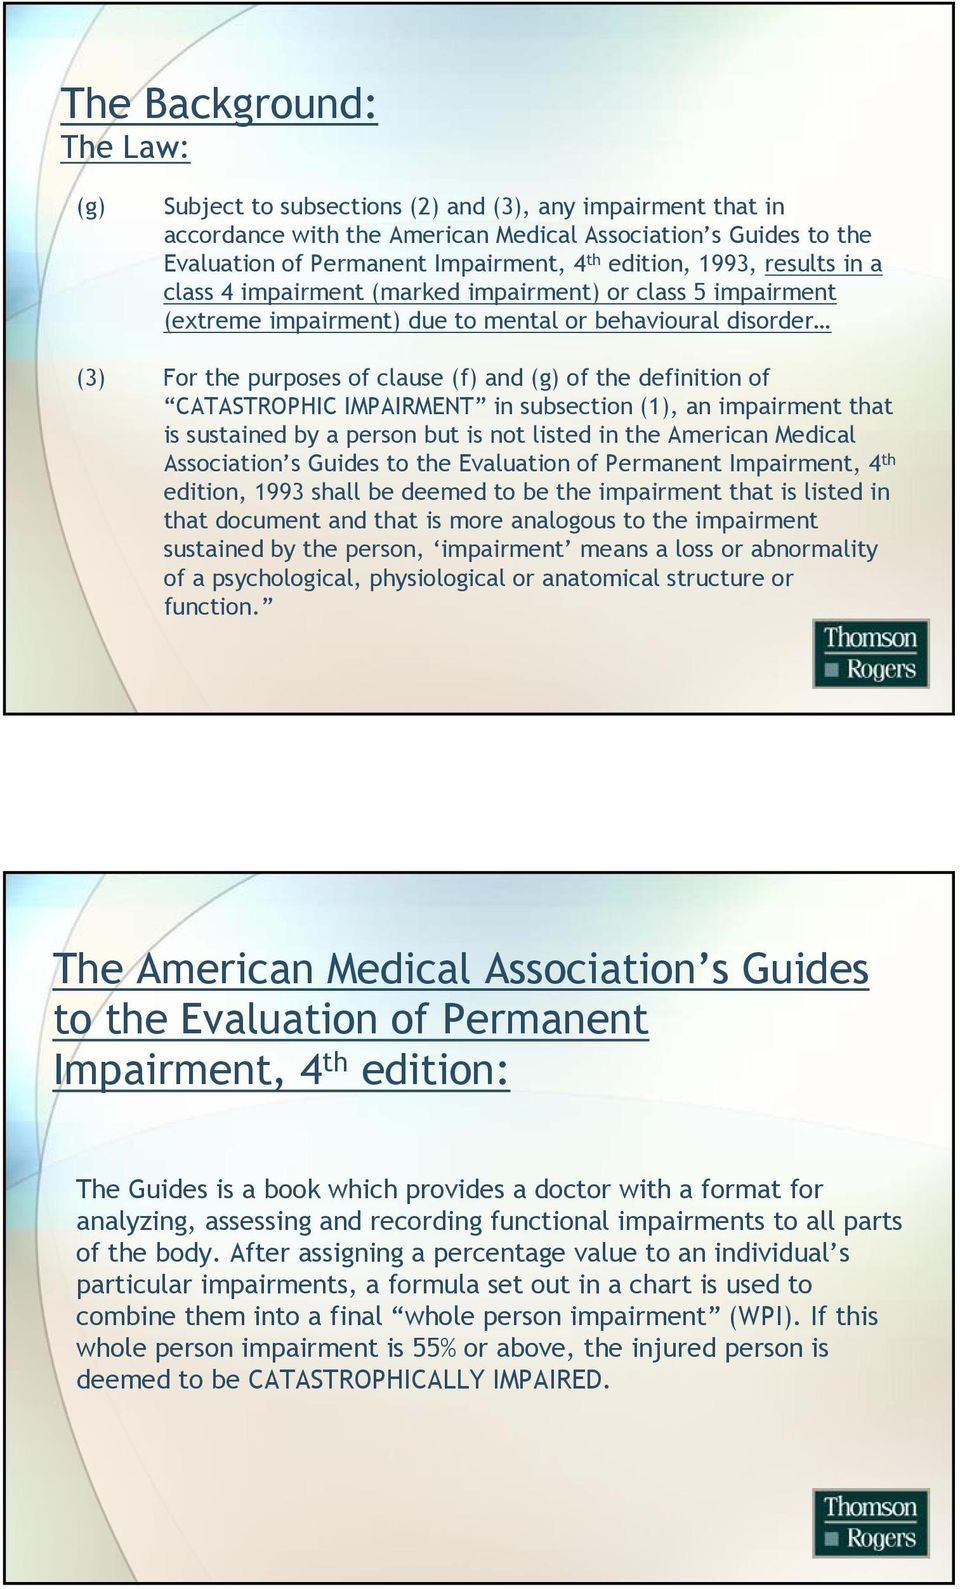 definition of CATASTROPHIC IMPAIRMENT in subsection (1), an impairment that is sustained by a person but is not listed in the American Medical Association s Guides to the Evaluation of Permanent